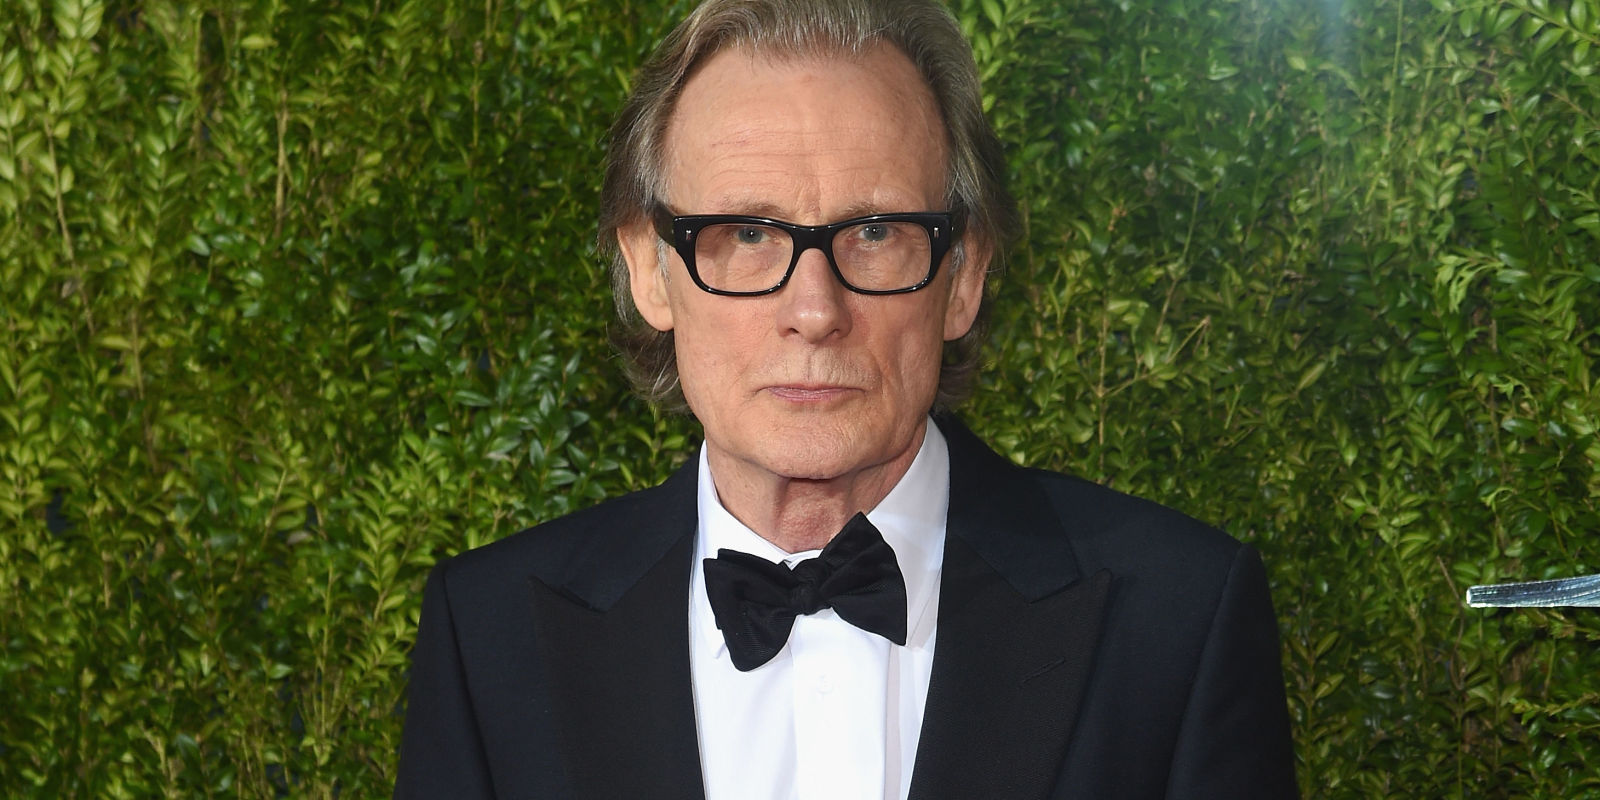 Bill nighy lives